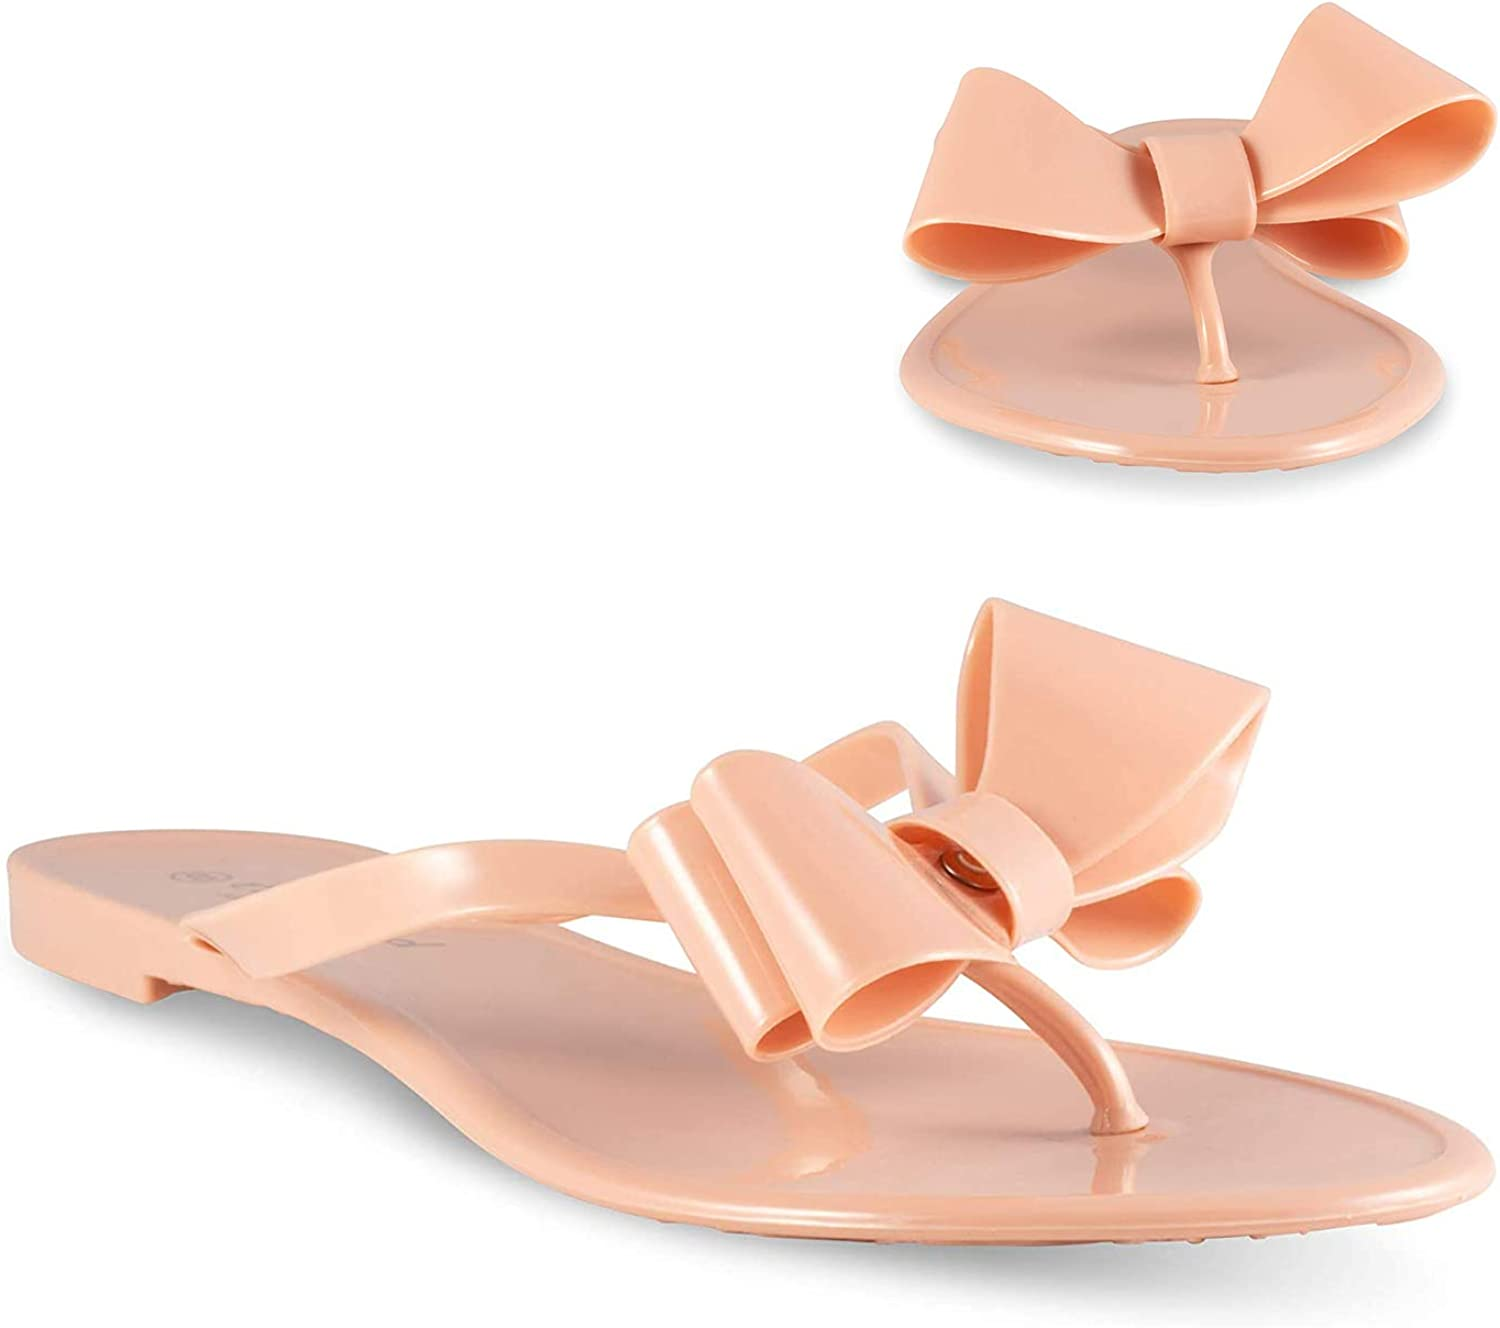 Twisted Justina Womens Sandals with Bow   Ladies Flat Heel Flip